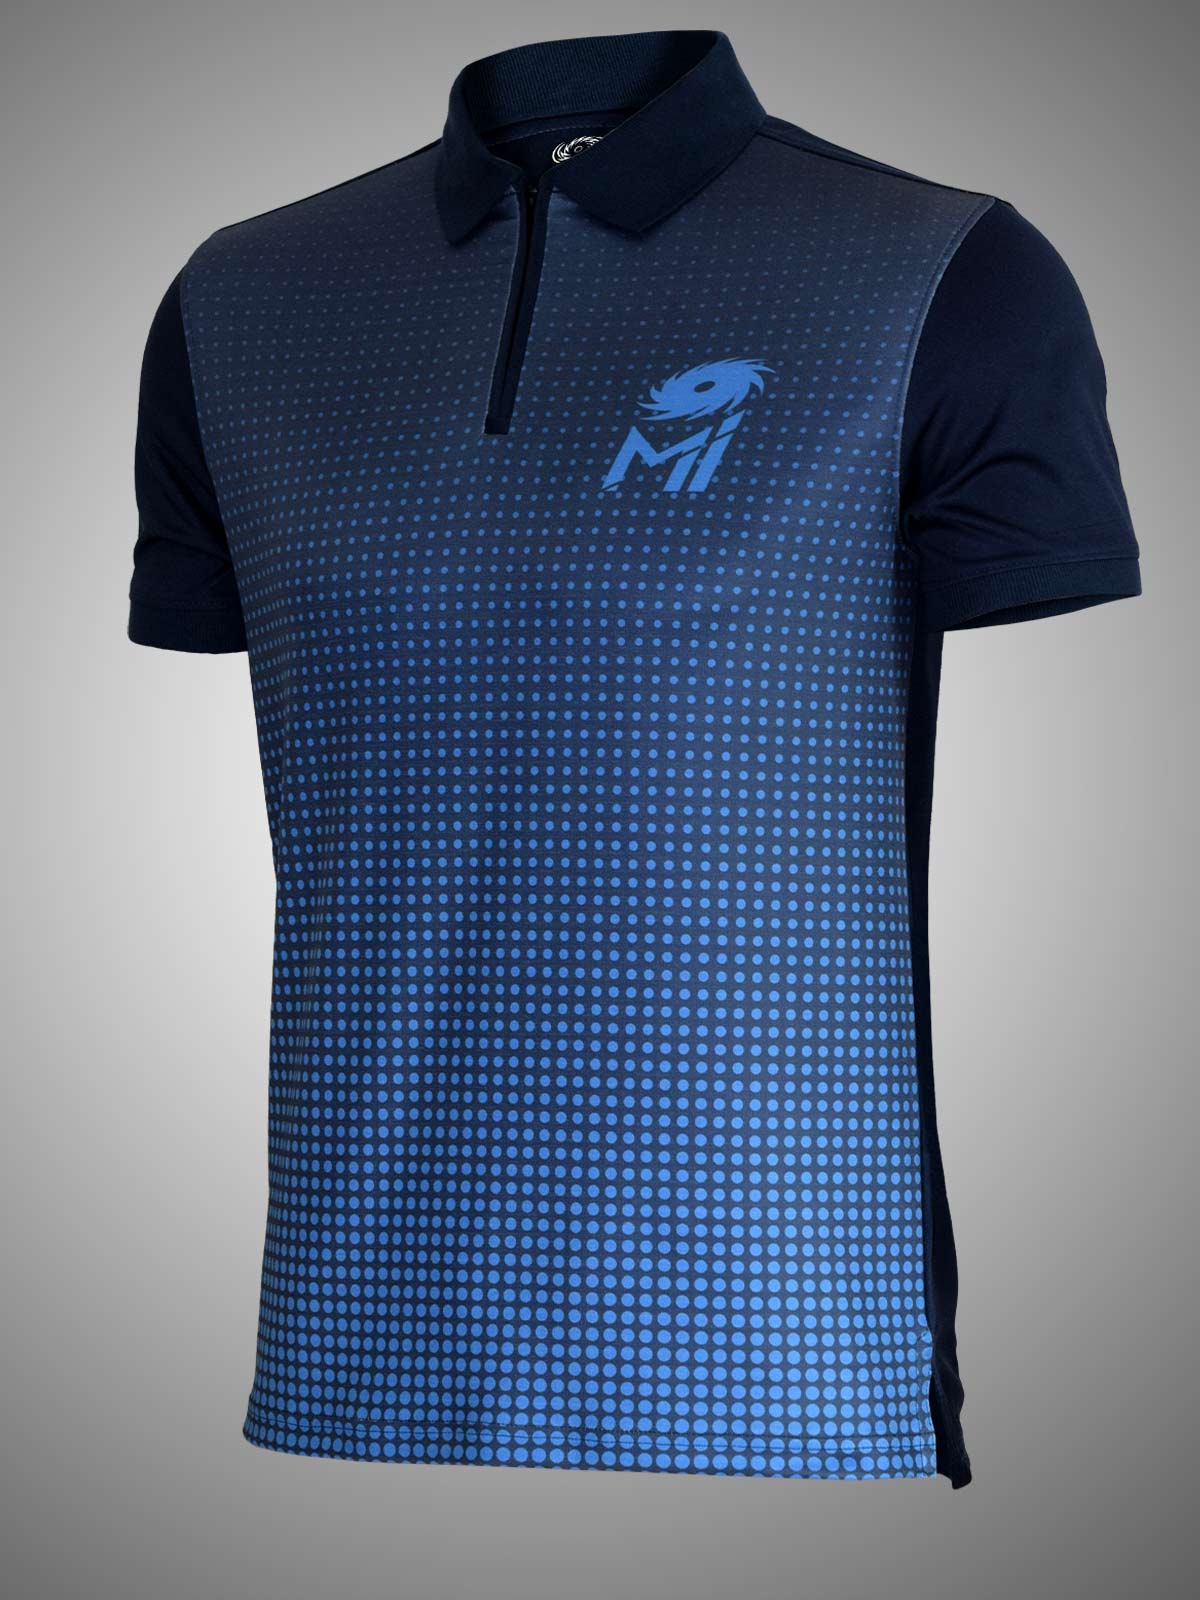 Mumbai Indians Official Dry Fit Polo with Half Zipper